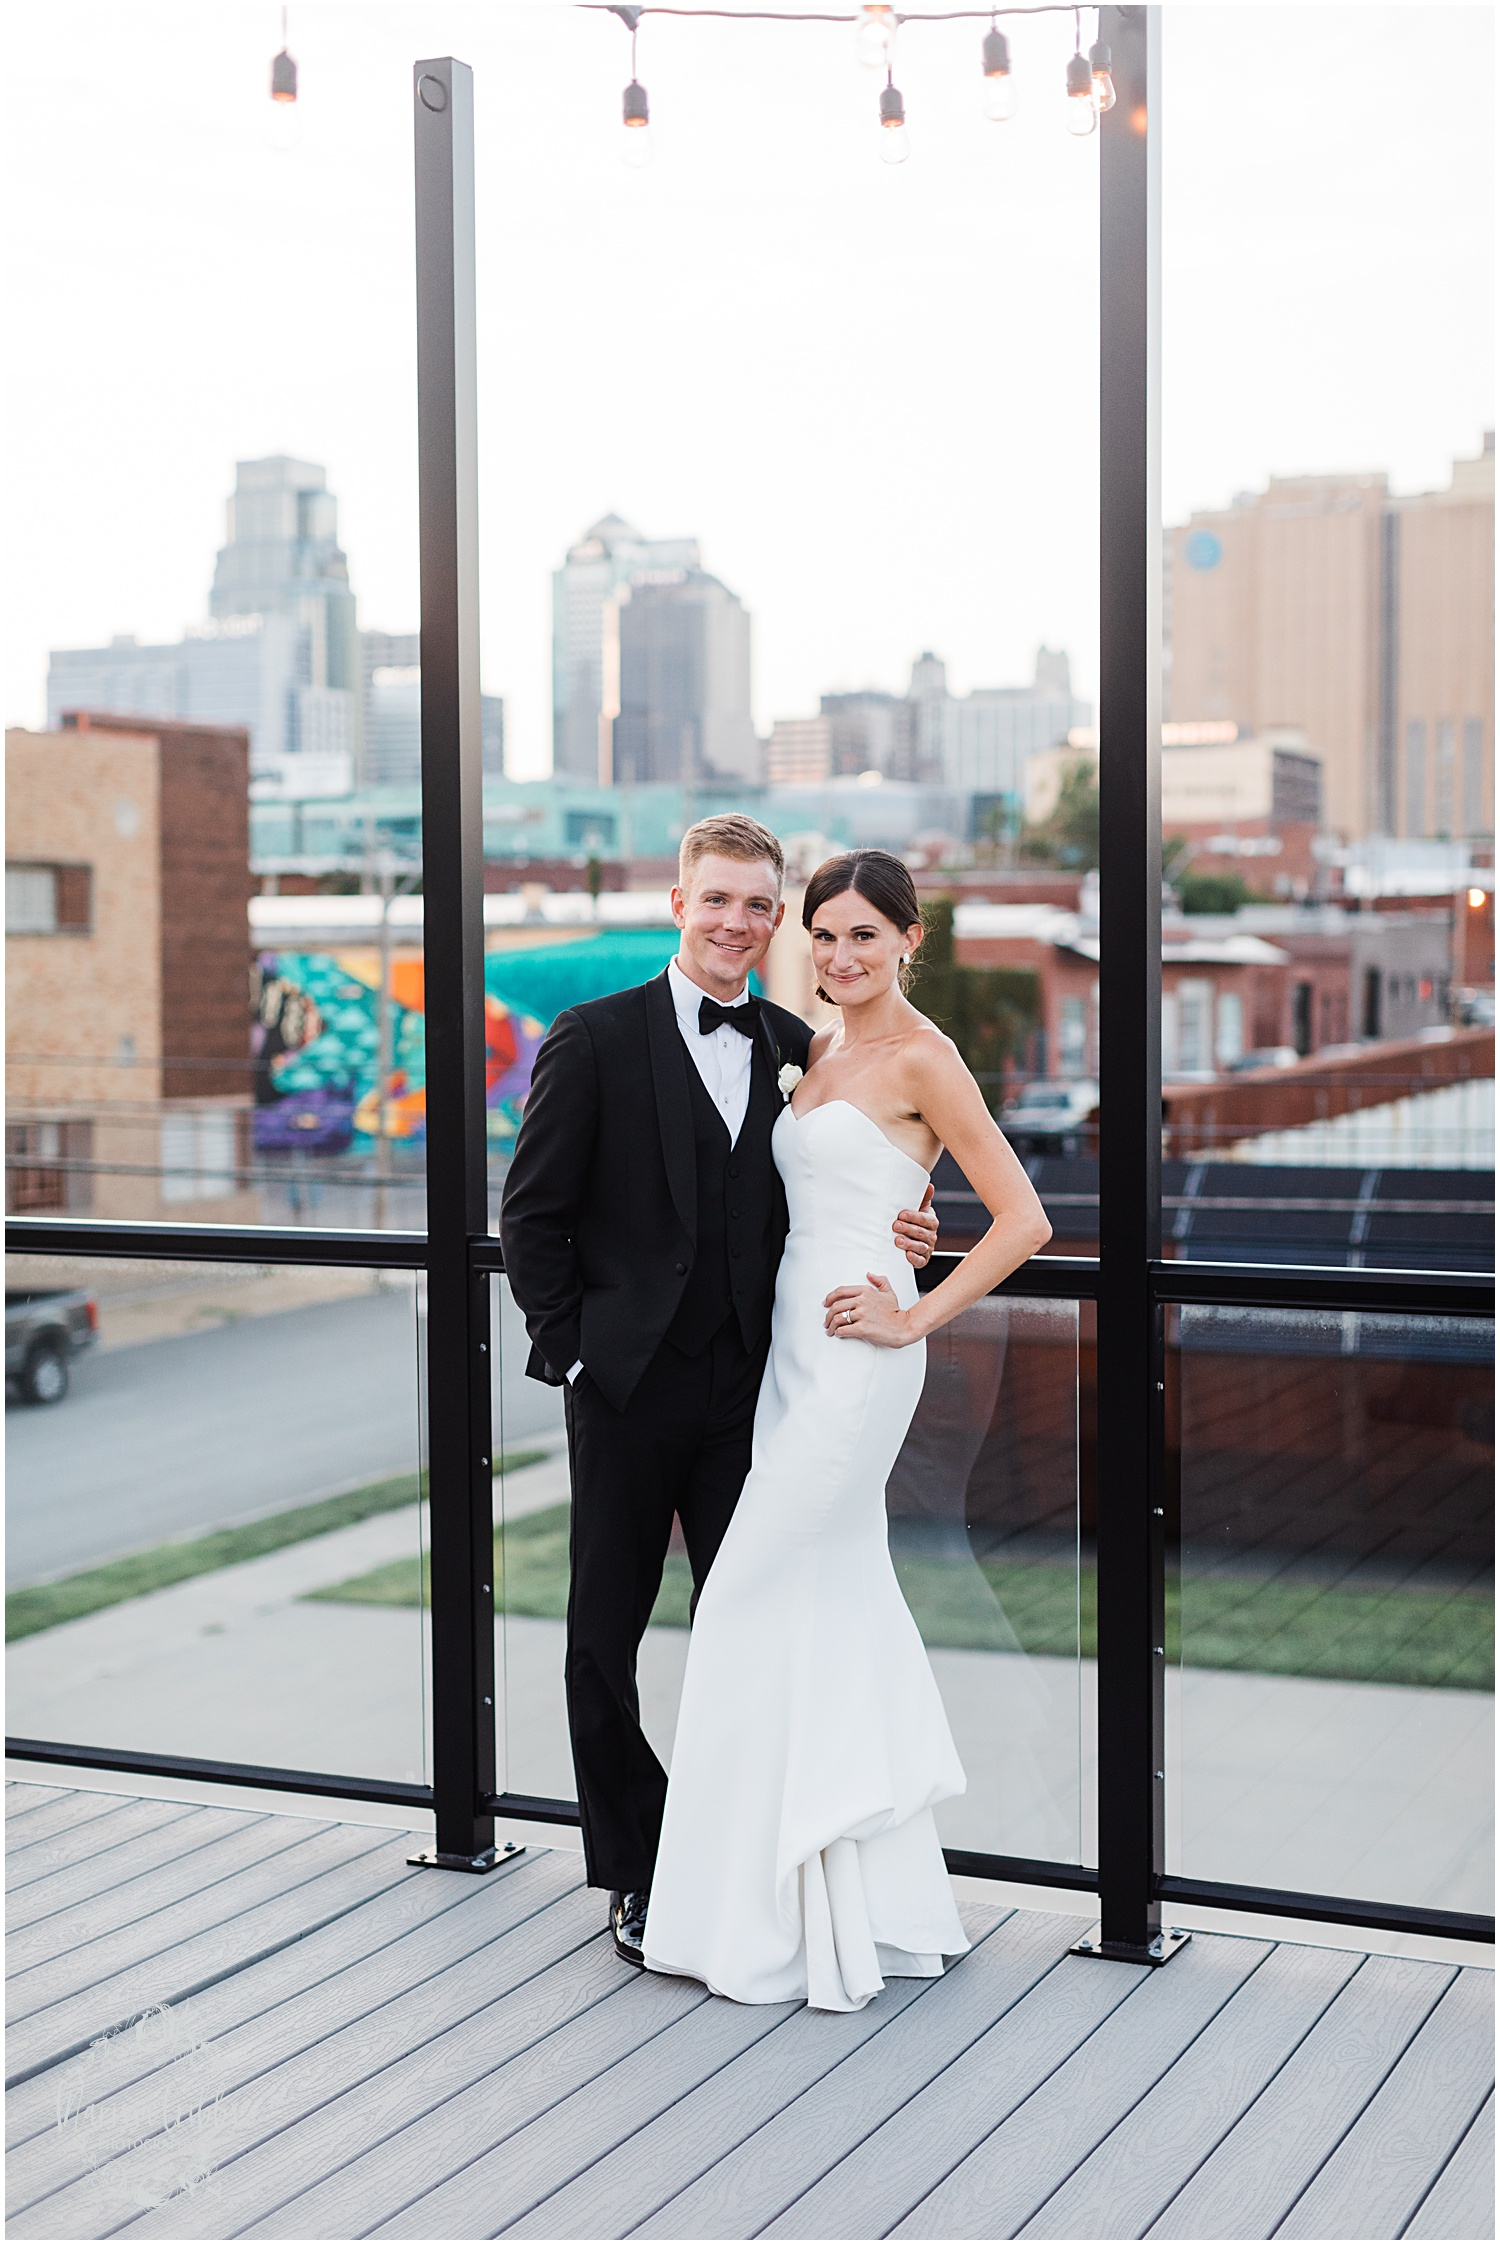 JOANNE & GEORGE MARRIED BLOG | MARISSA CRIBBS PHOTOGRAPHY | THE ABBOTT | KANSAS CITY WEDDING PHOTOS_9172.jpg